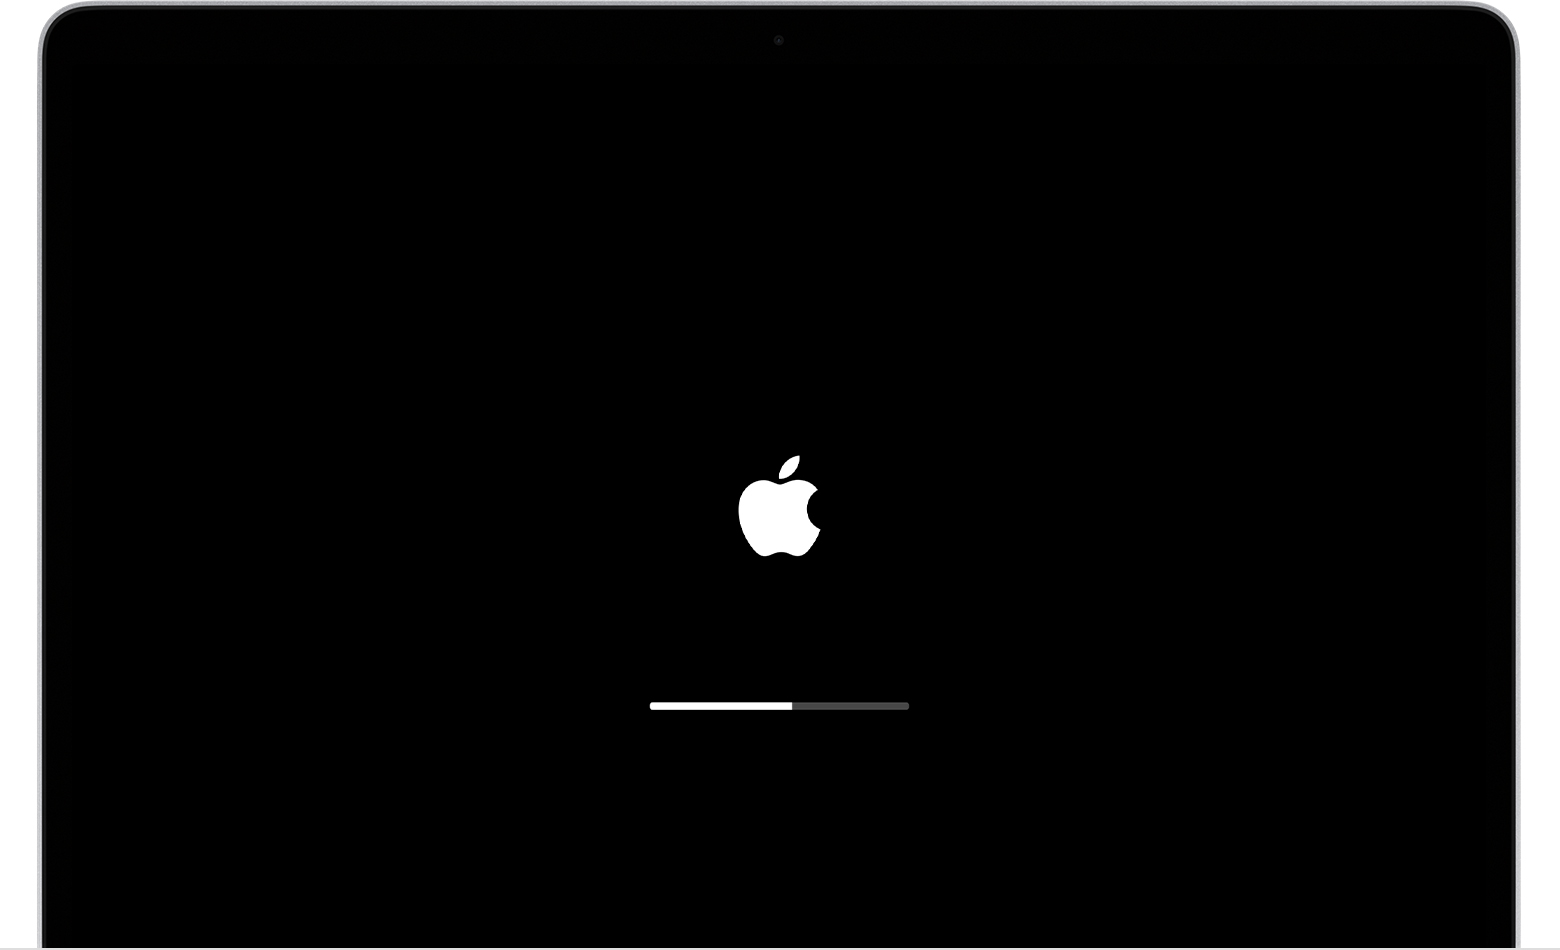 Apple logo with progress bar